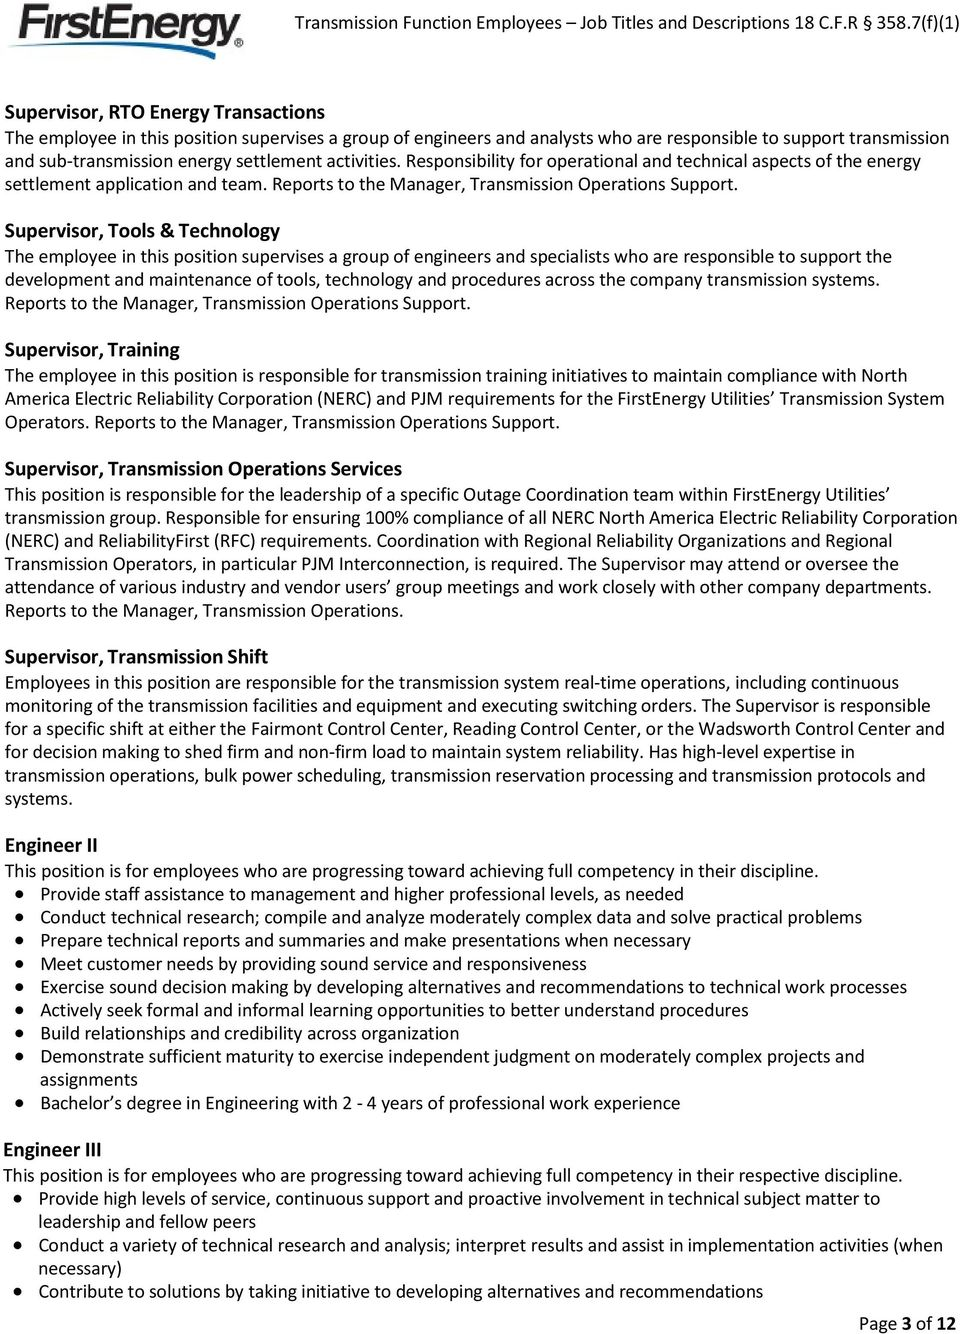 Supervisor, Tools & Technology The employee in this position supervises a group of engineers and specialists who are responsible to support the development and maintenance of tools, technology and